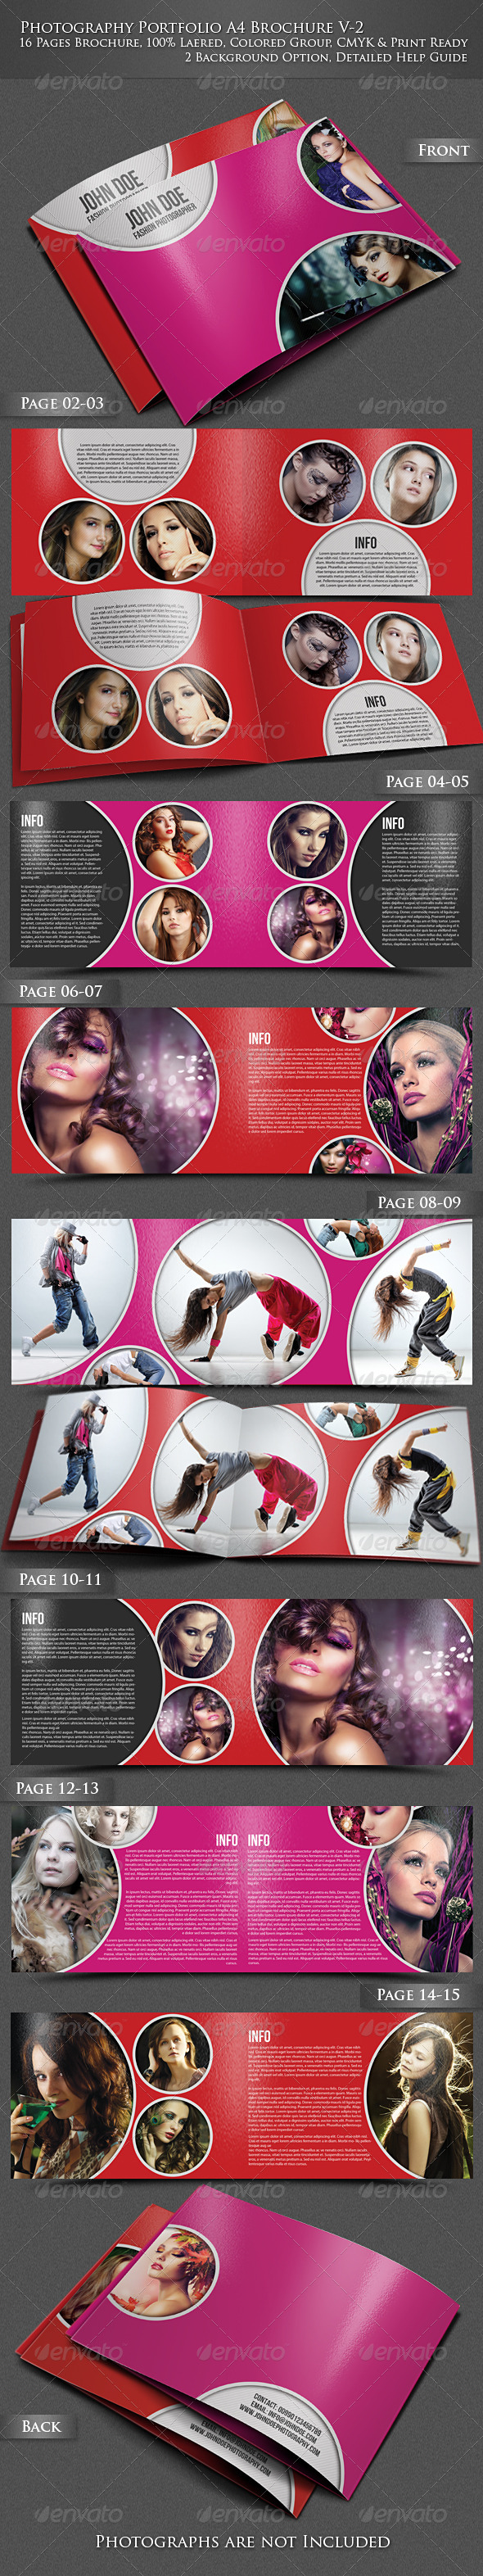 GraphicRiver Photography Portfolio A4 Brochure V2 4069802